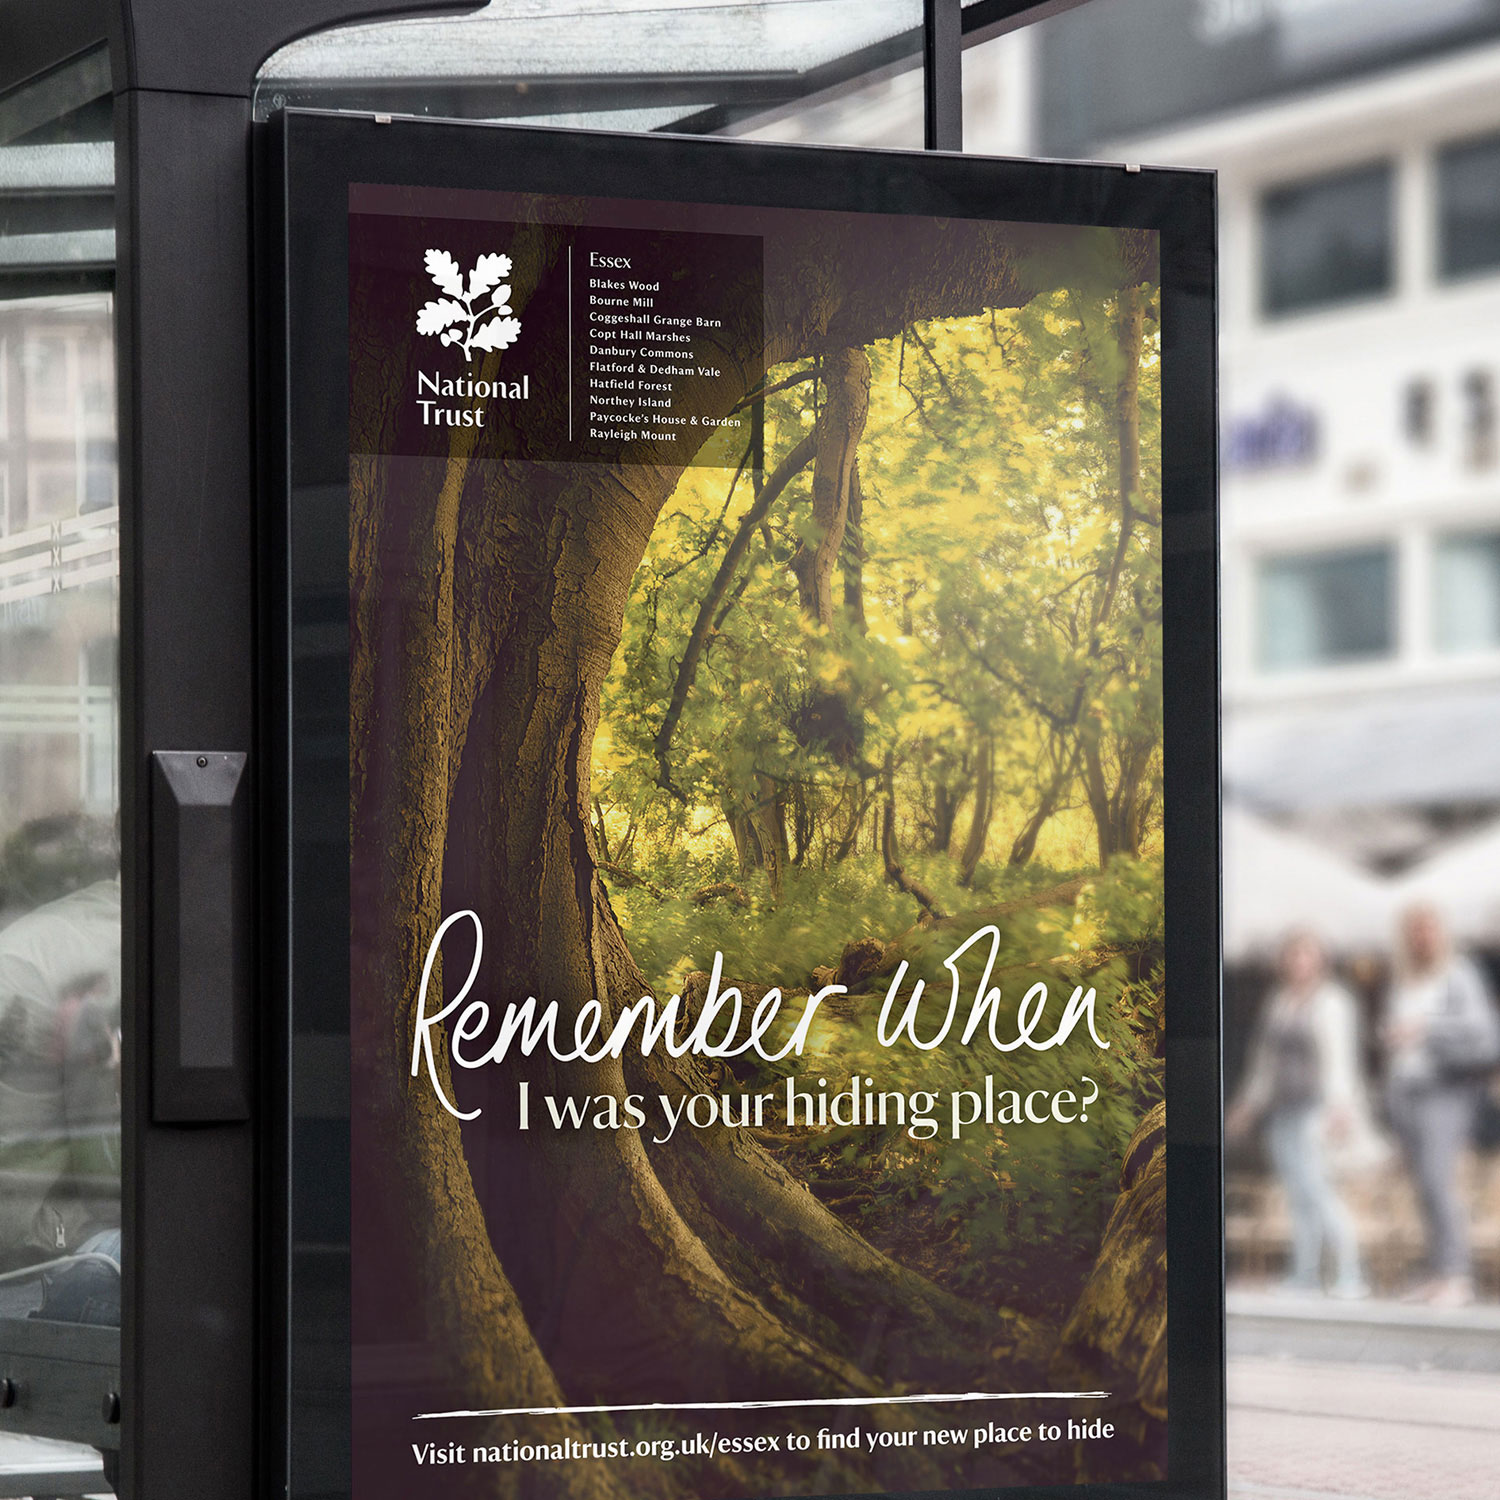 National Trust bus shelter advert